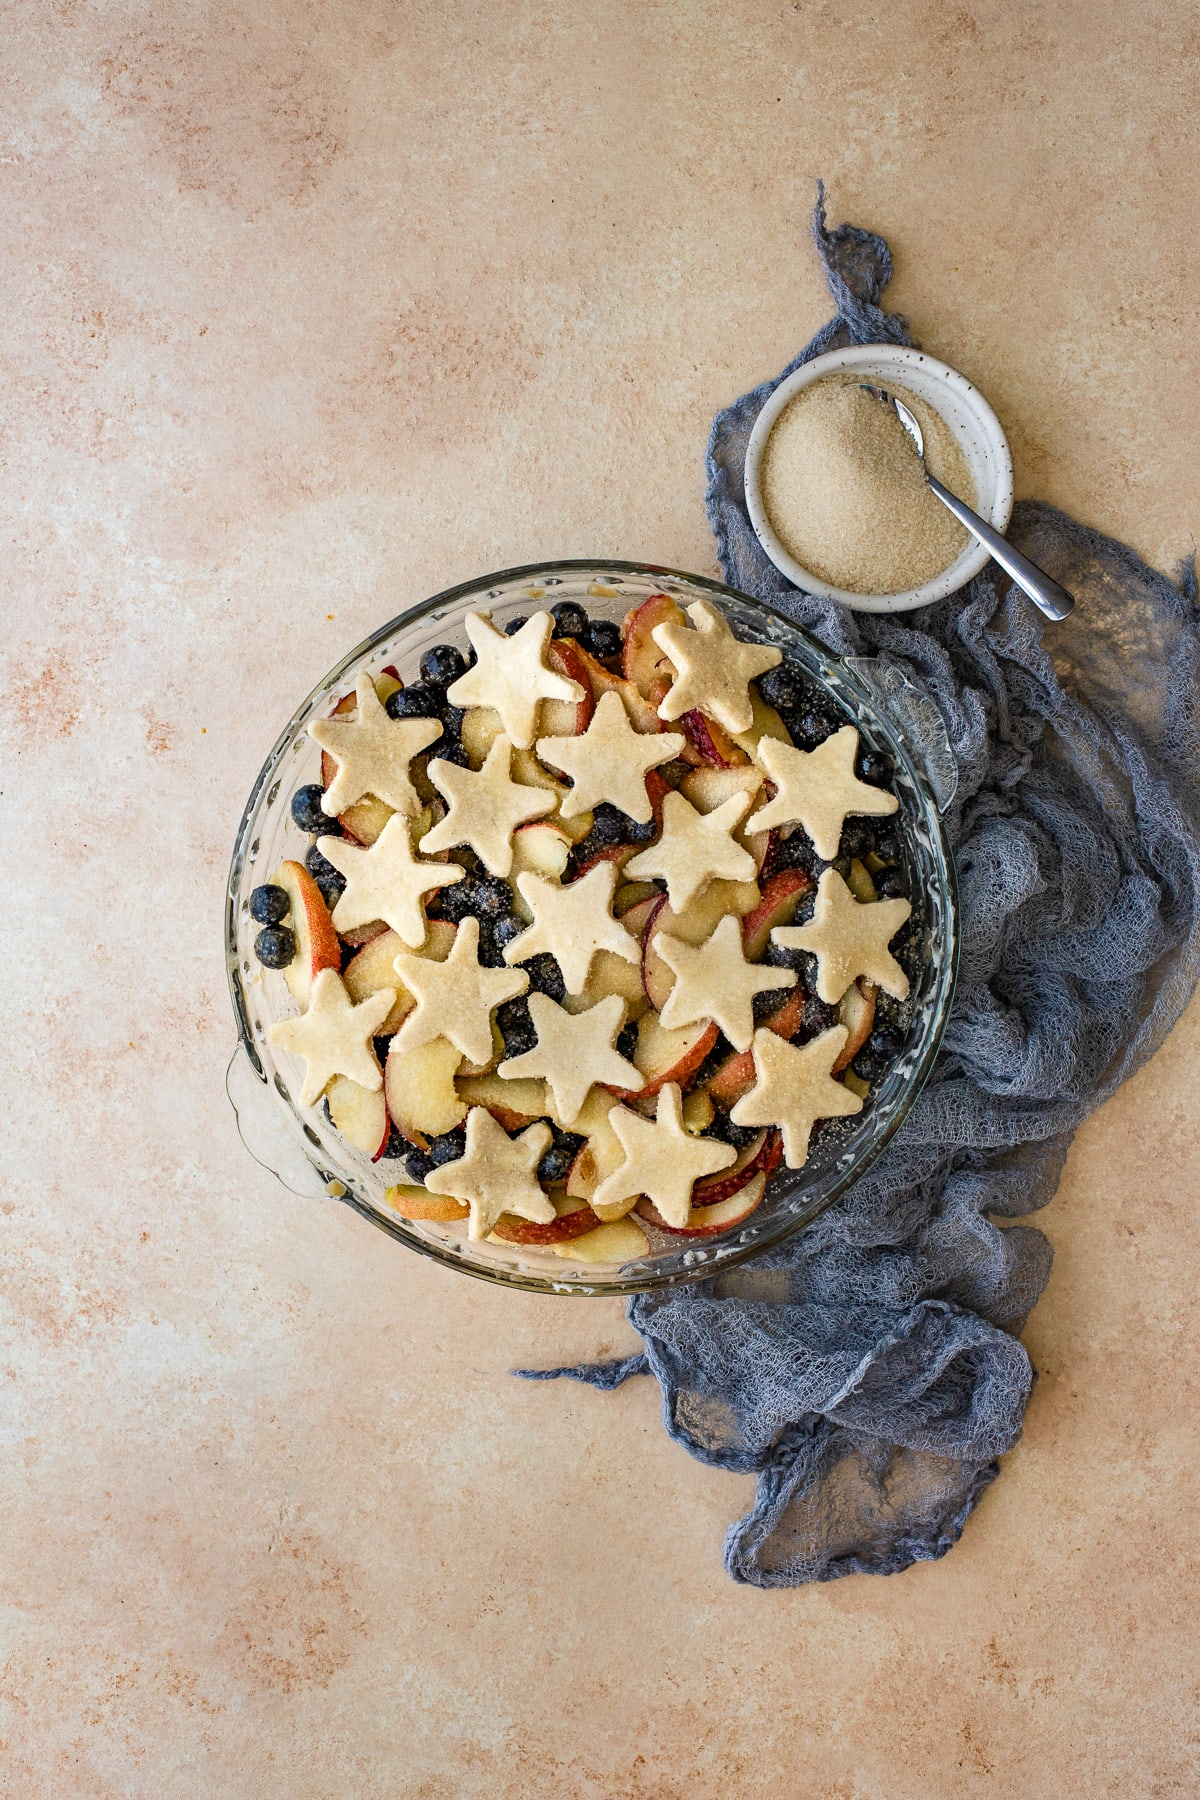 Cobbler prepped in a pie dish, ready to bake.